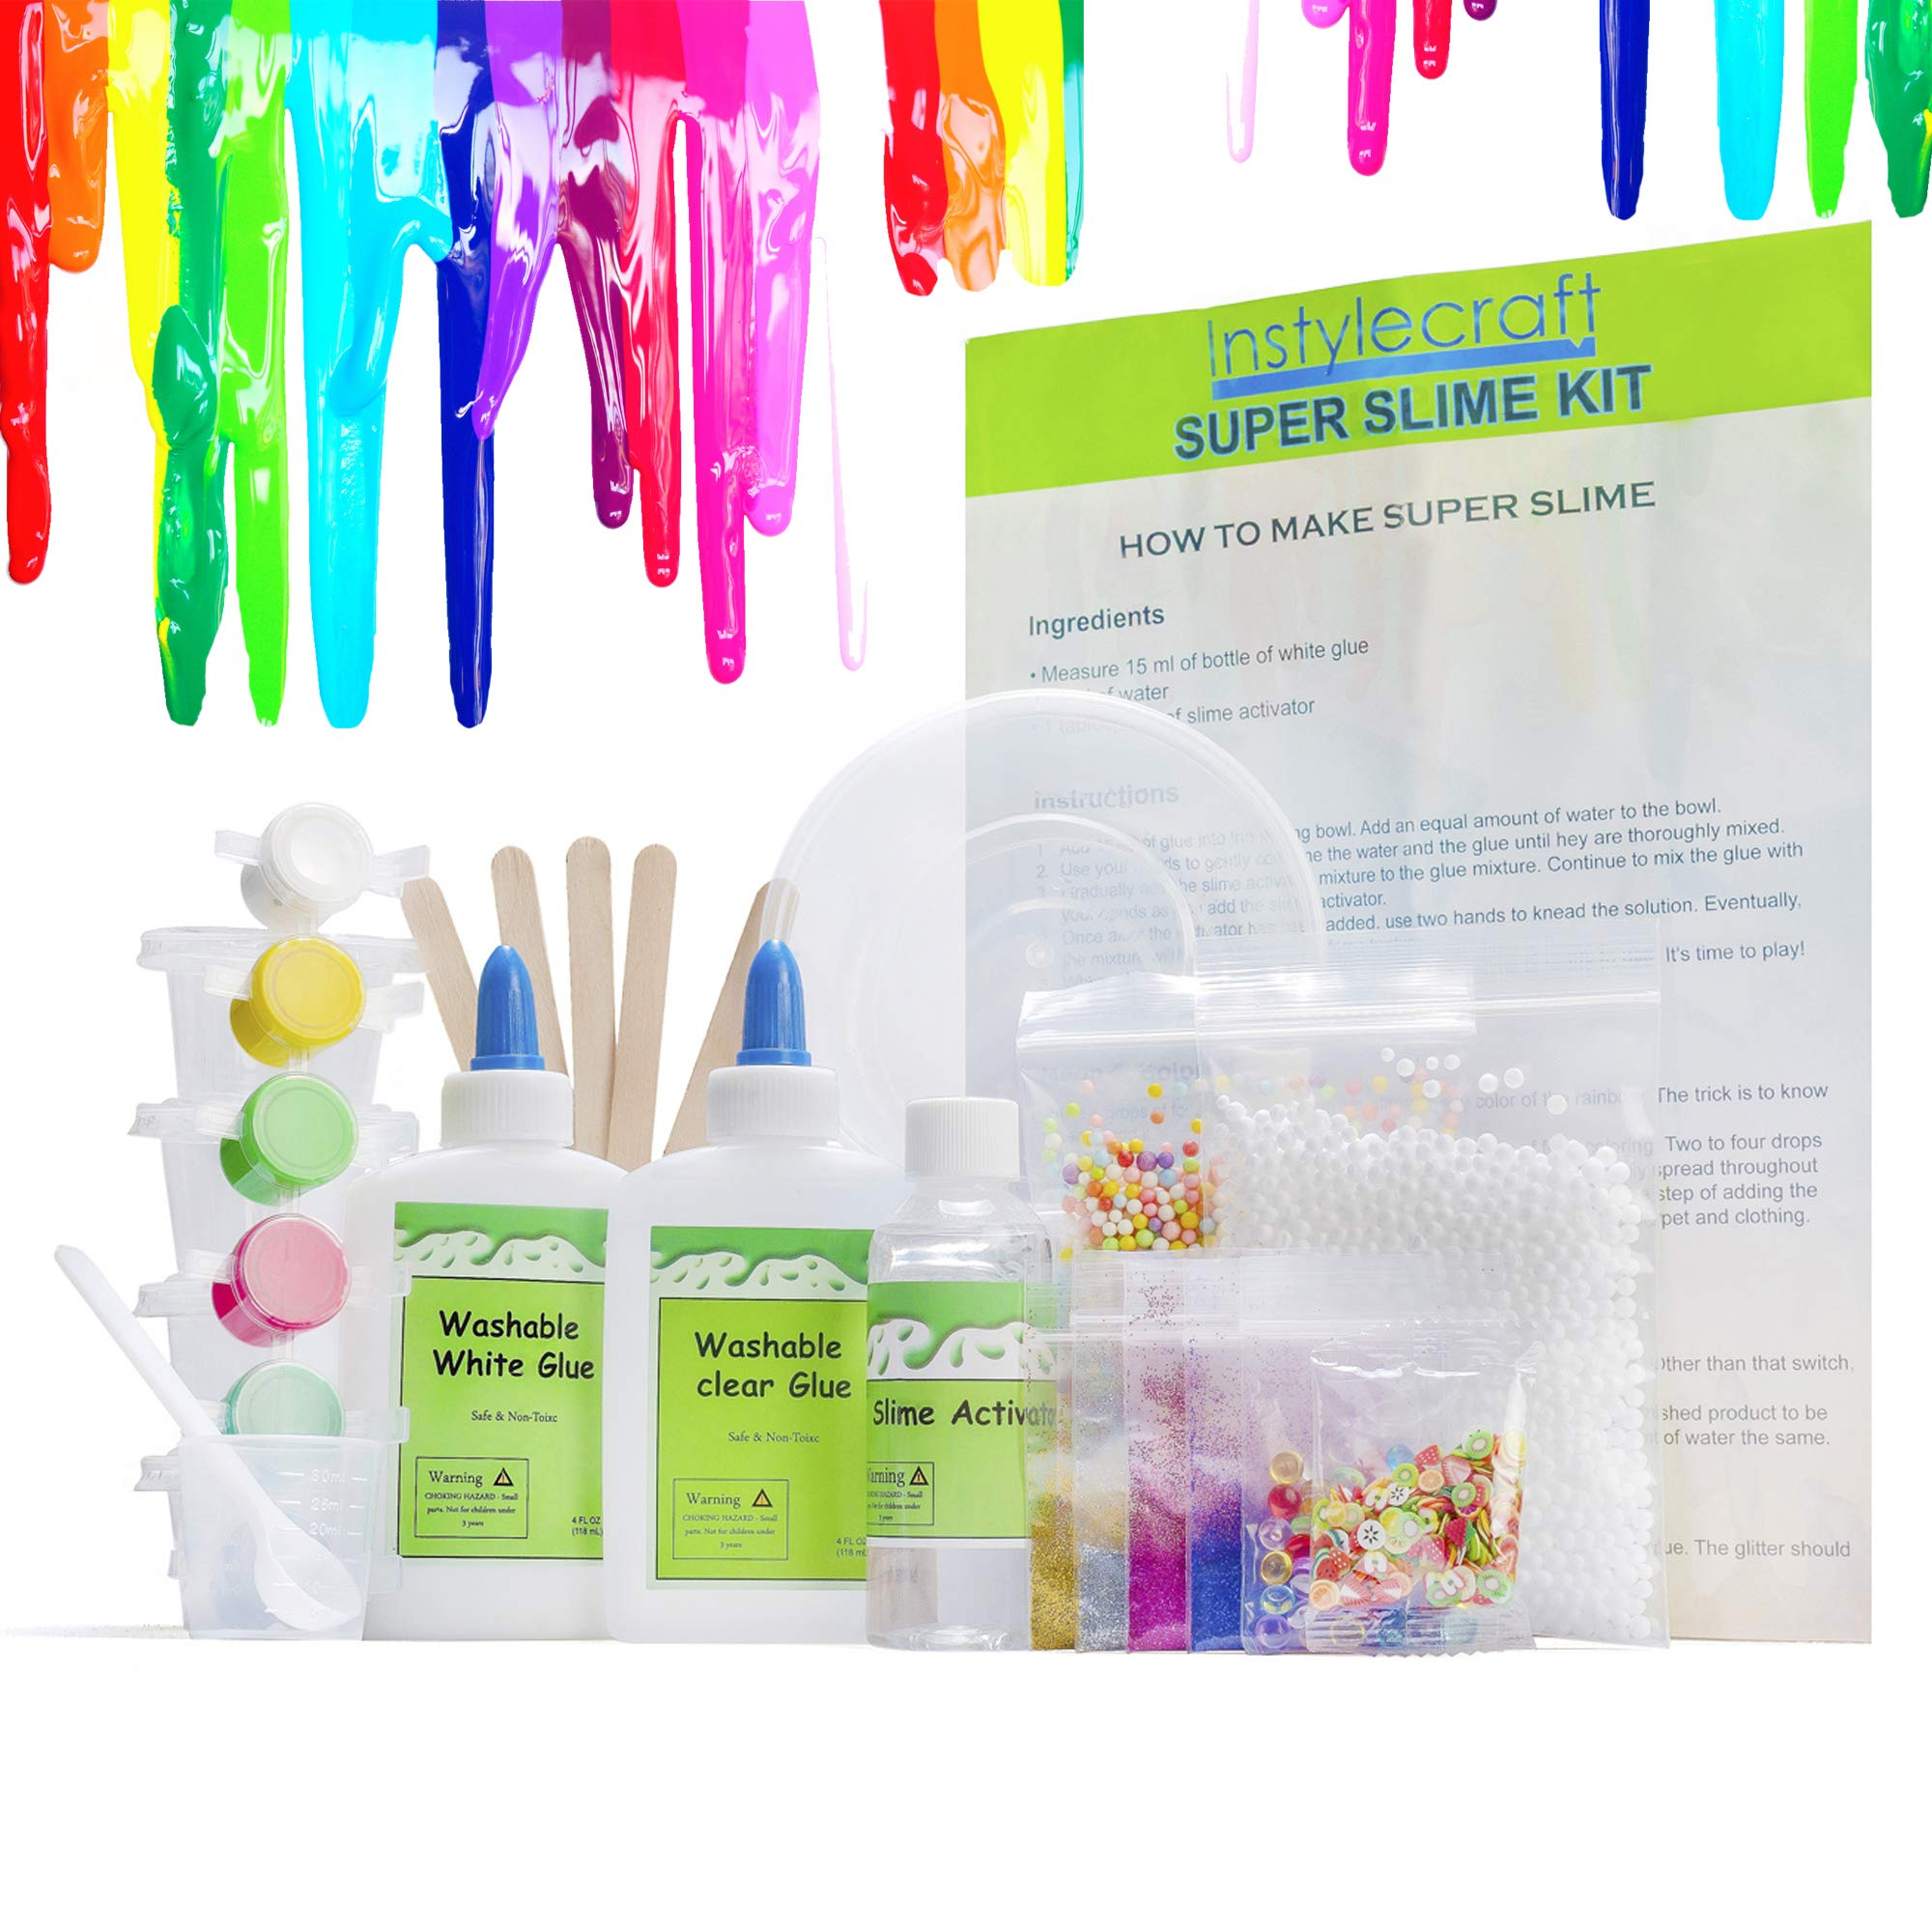 DIY Slime Kit -Learn how to make slime! Make Glow-In-The Dark, Clear, Neon and Glitter Slime - Perfect Gifting Option! Comes With Easy To Make Recipes! Super Slime Making Kit for Boys & Girls! by InStyleCraft (Image #1)